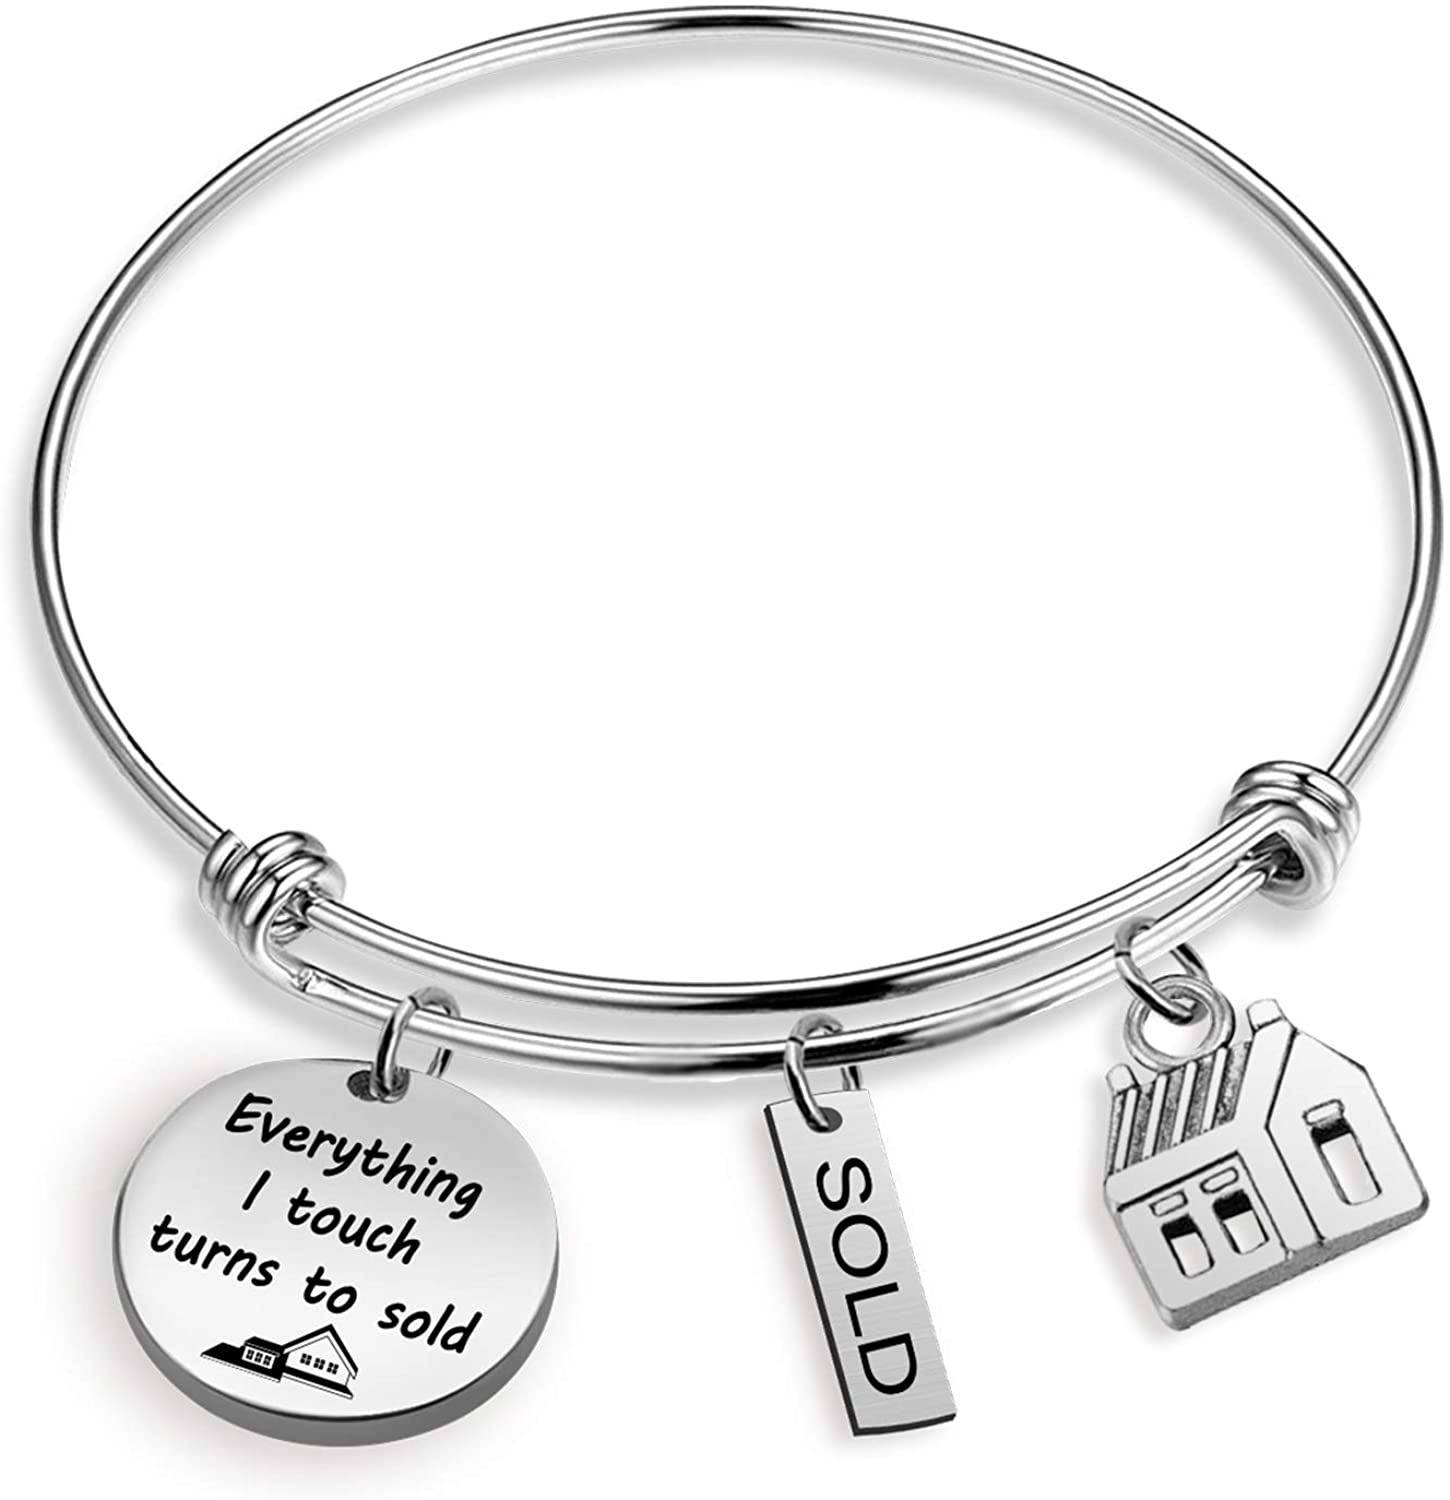 Realtor Bracelet Everything I Touch Turns To Sold Realtor House Sold Jewelry Appreciation Gifts for Realtor Estate Agent(everything touch sold BR)